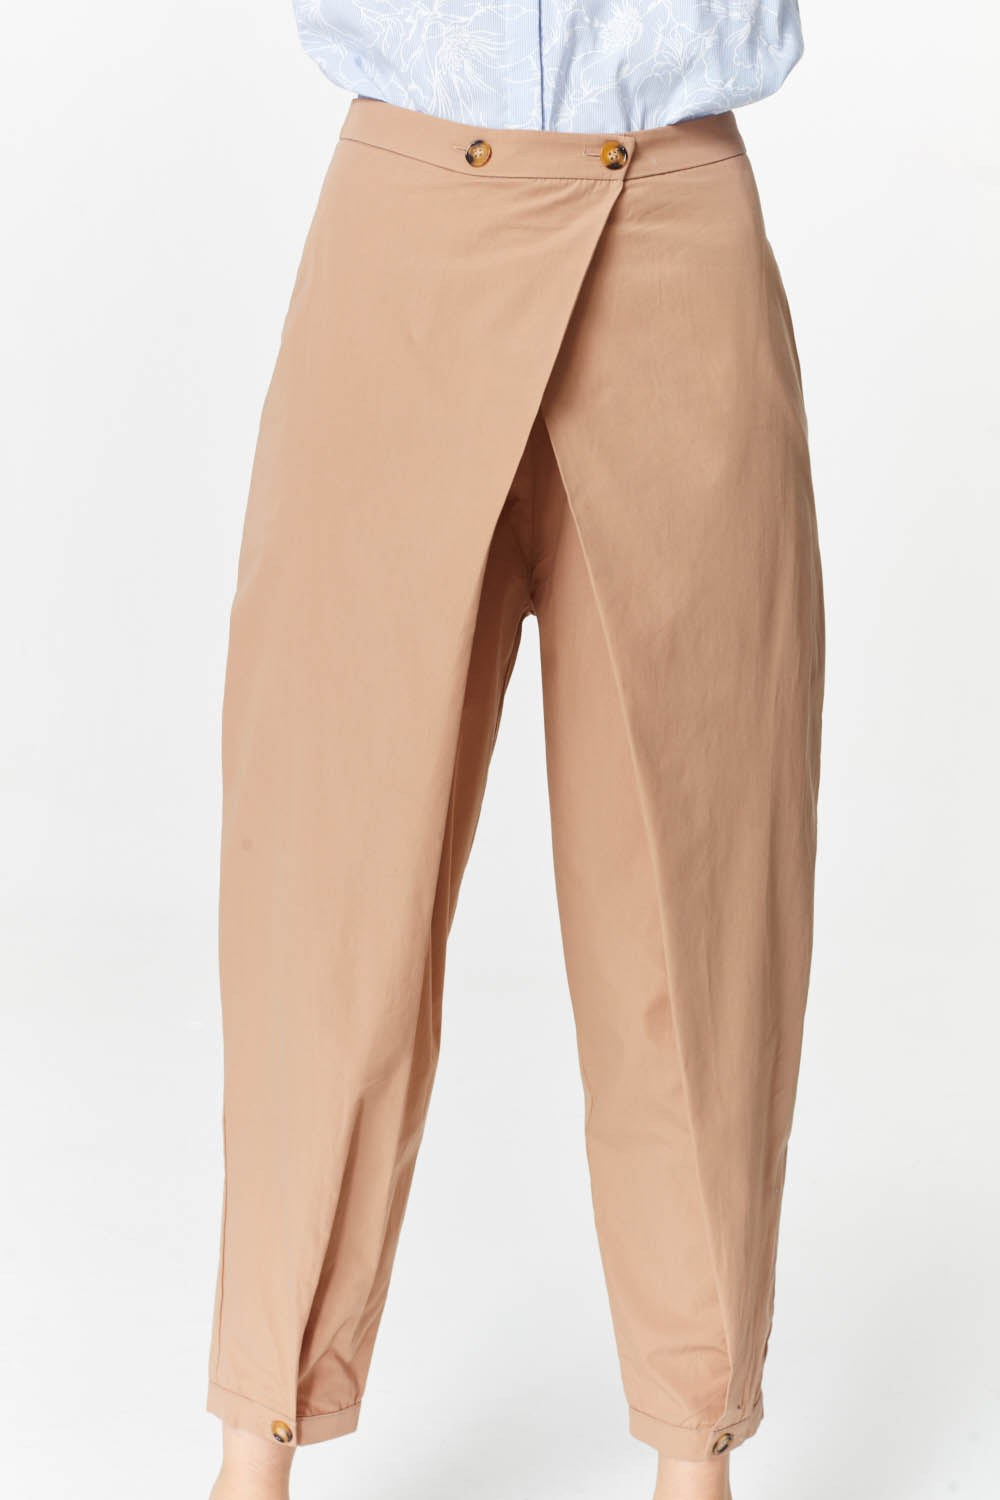 MIZALLE Asymmetric Detailed Trousers (Camel) (1)